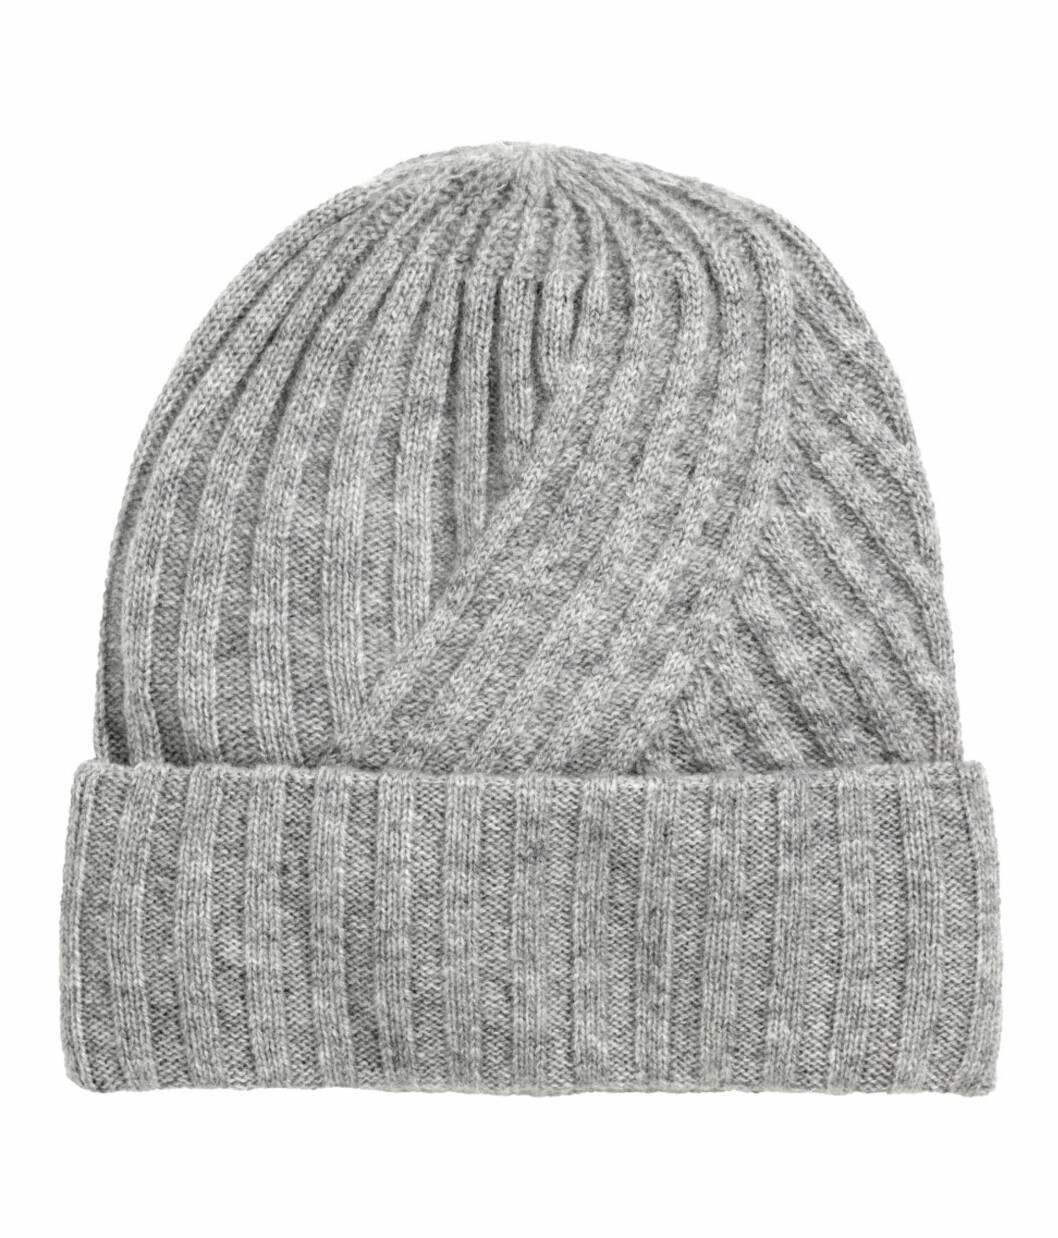 <strong>Lue i kasjmir fra H&M | kr 349 | http:</strong>//www.hm.com/no/product/54406?article=54406-C&cm_vc=SEARCH